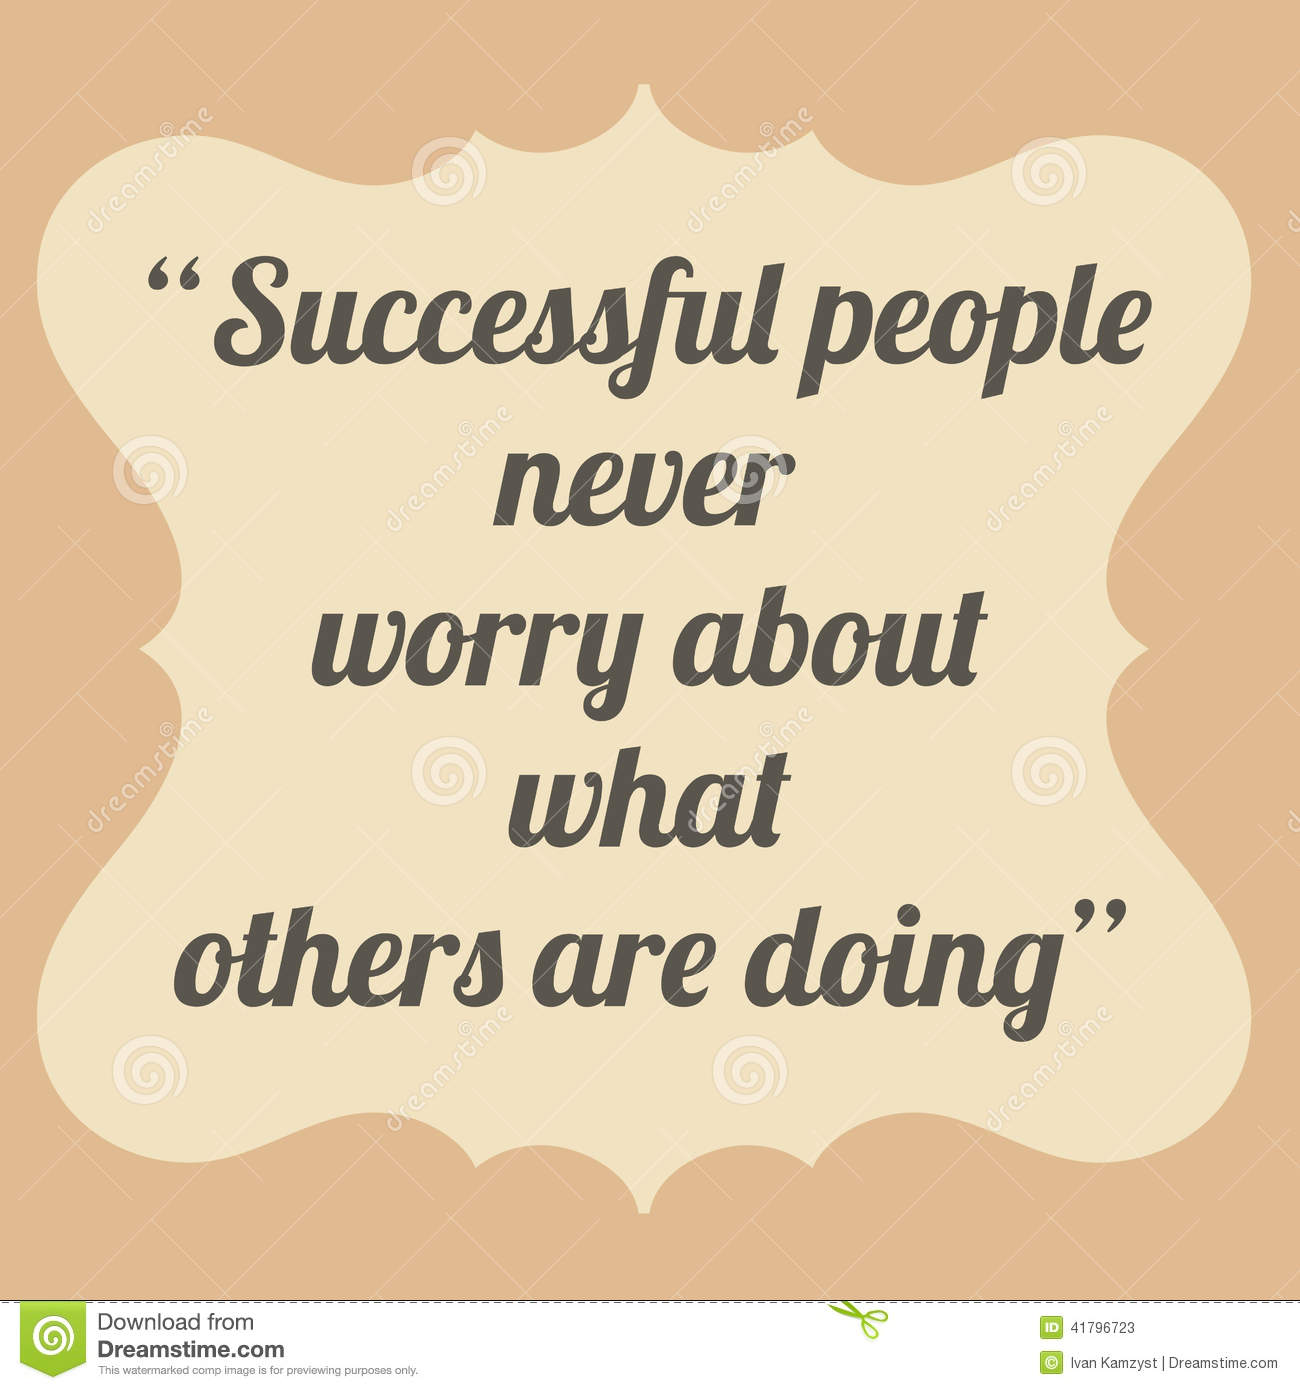 Teamwork quotes clip art quotesgram quotes for Classic animal house quotes